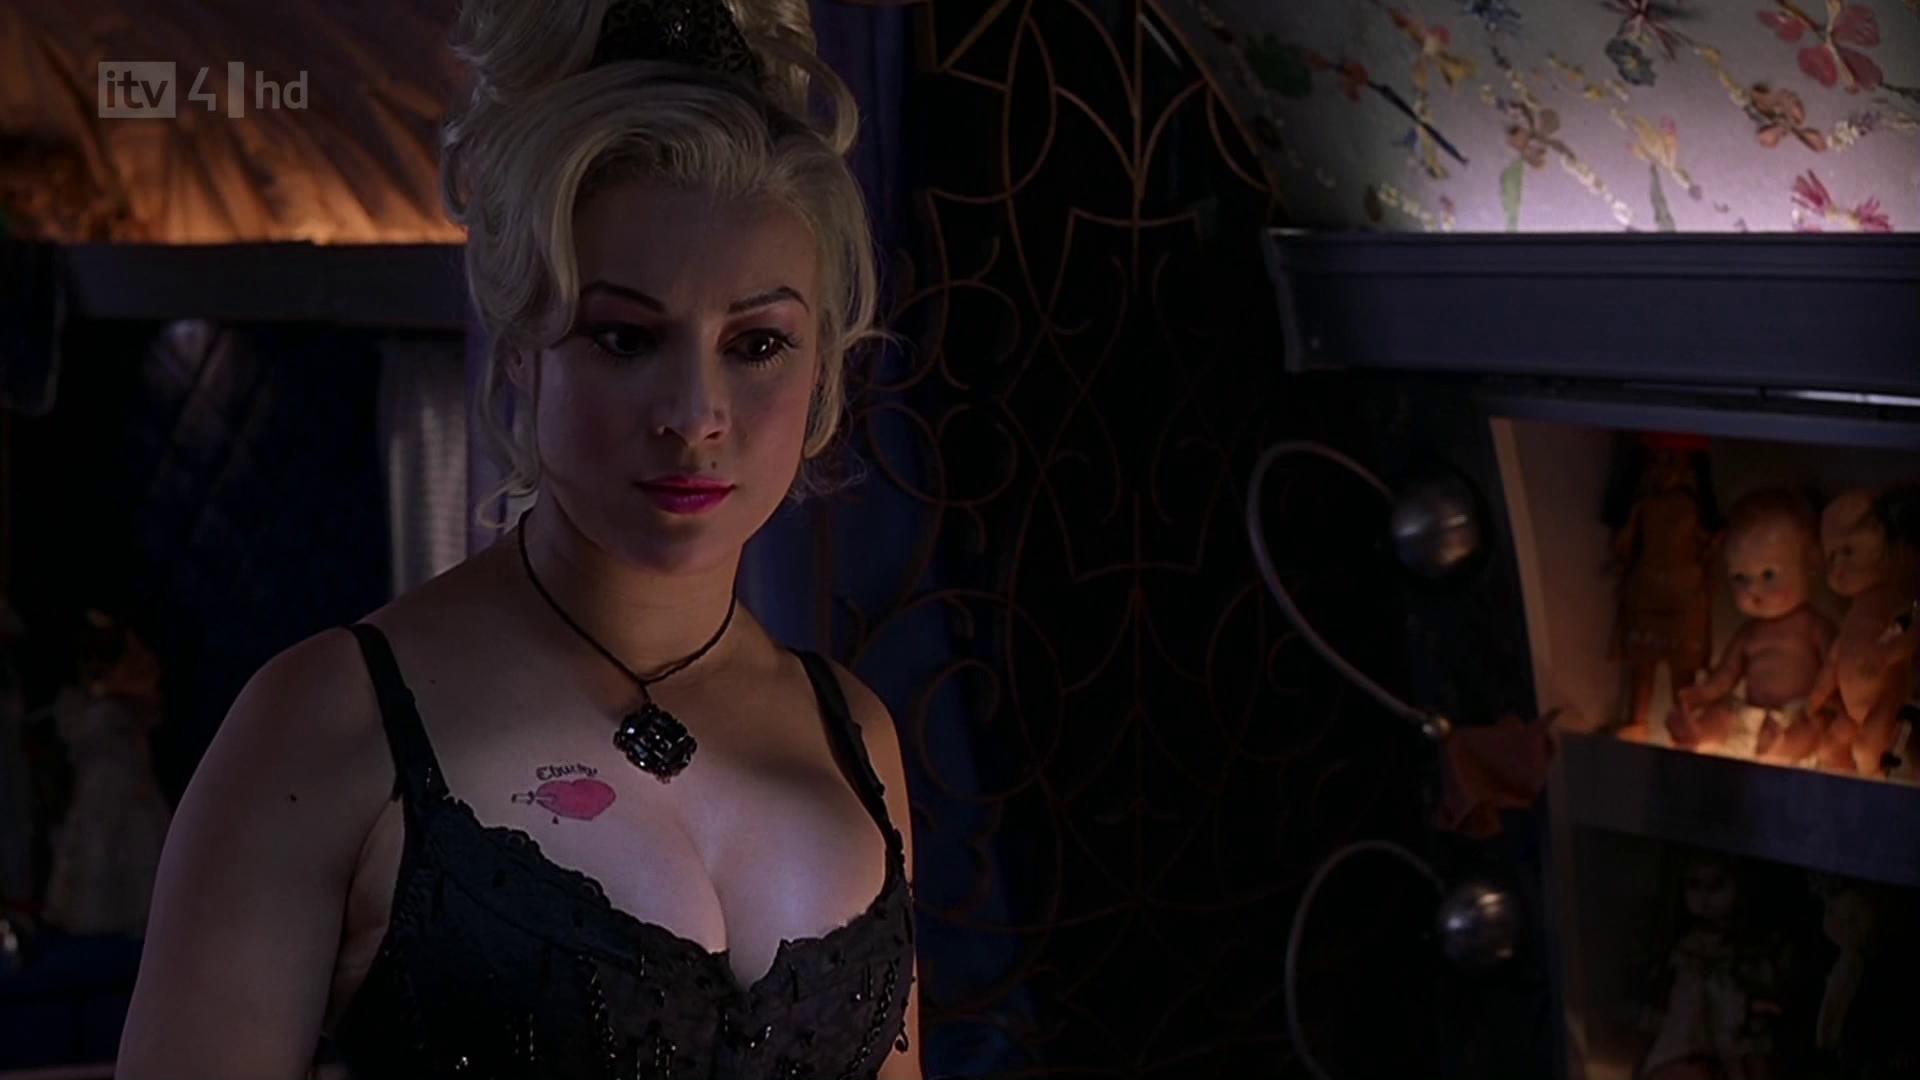 Bride Of Chucky - Jennifer Tilly Image (28949796) - Fanpop